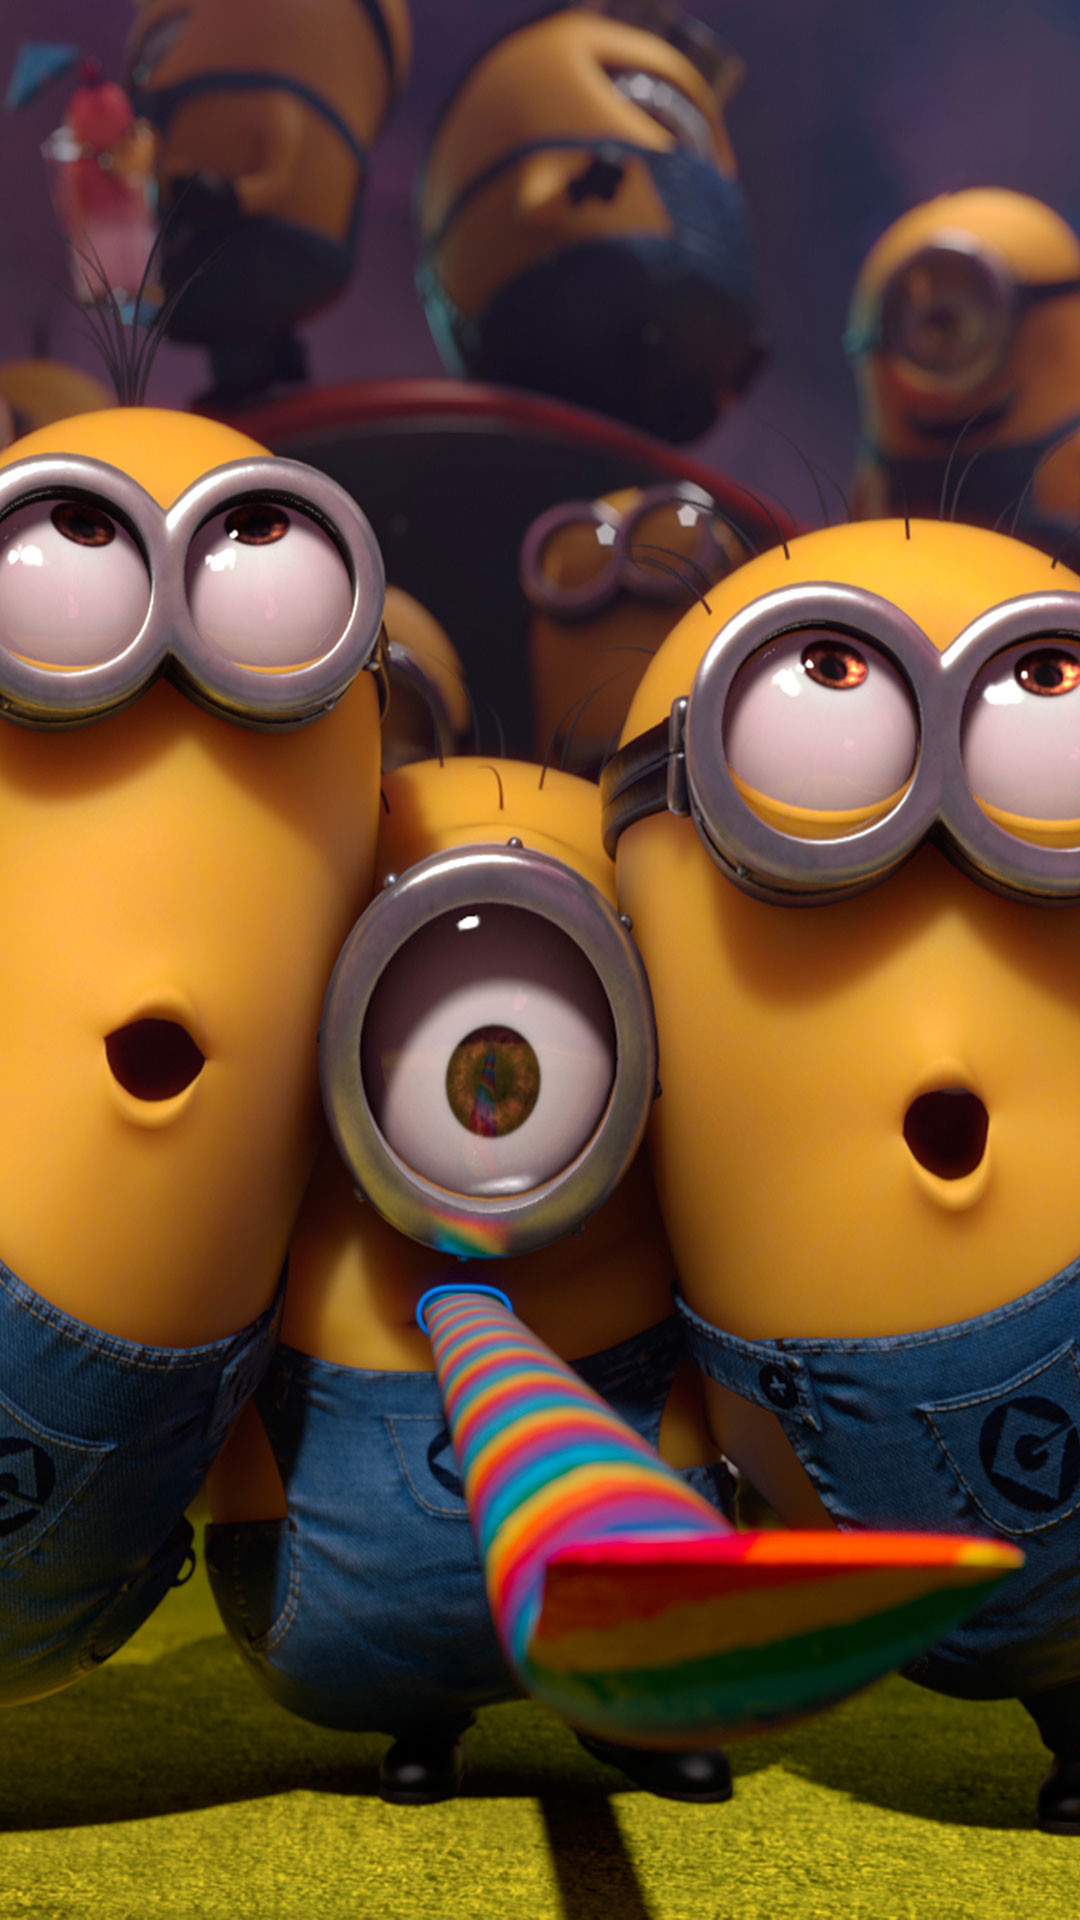 Res: 1080x1920, Wallpaper Weekends: Minions!